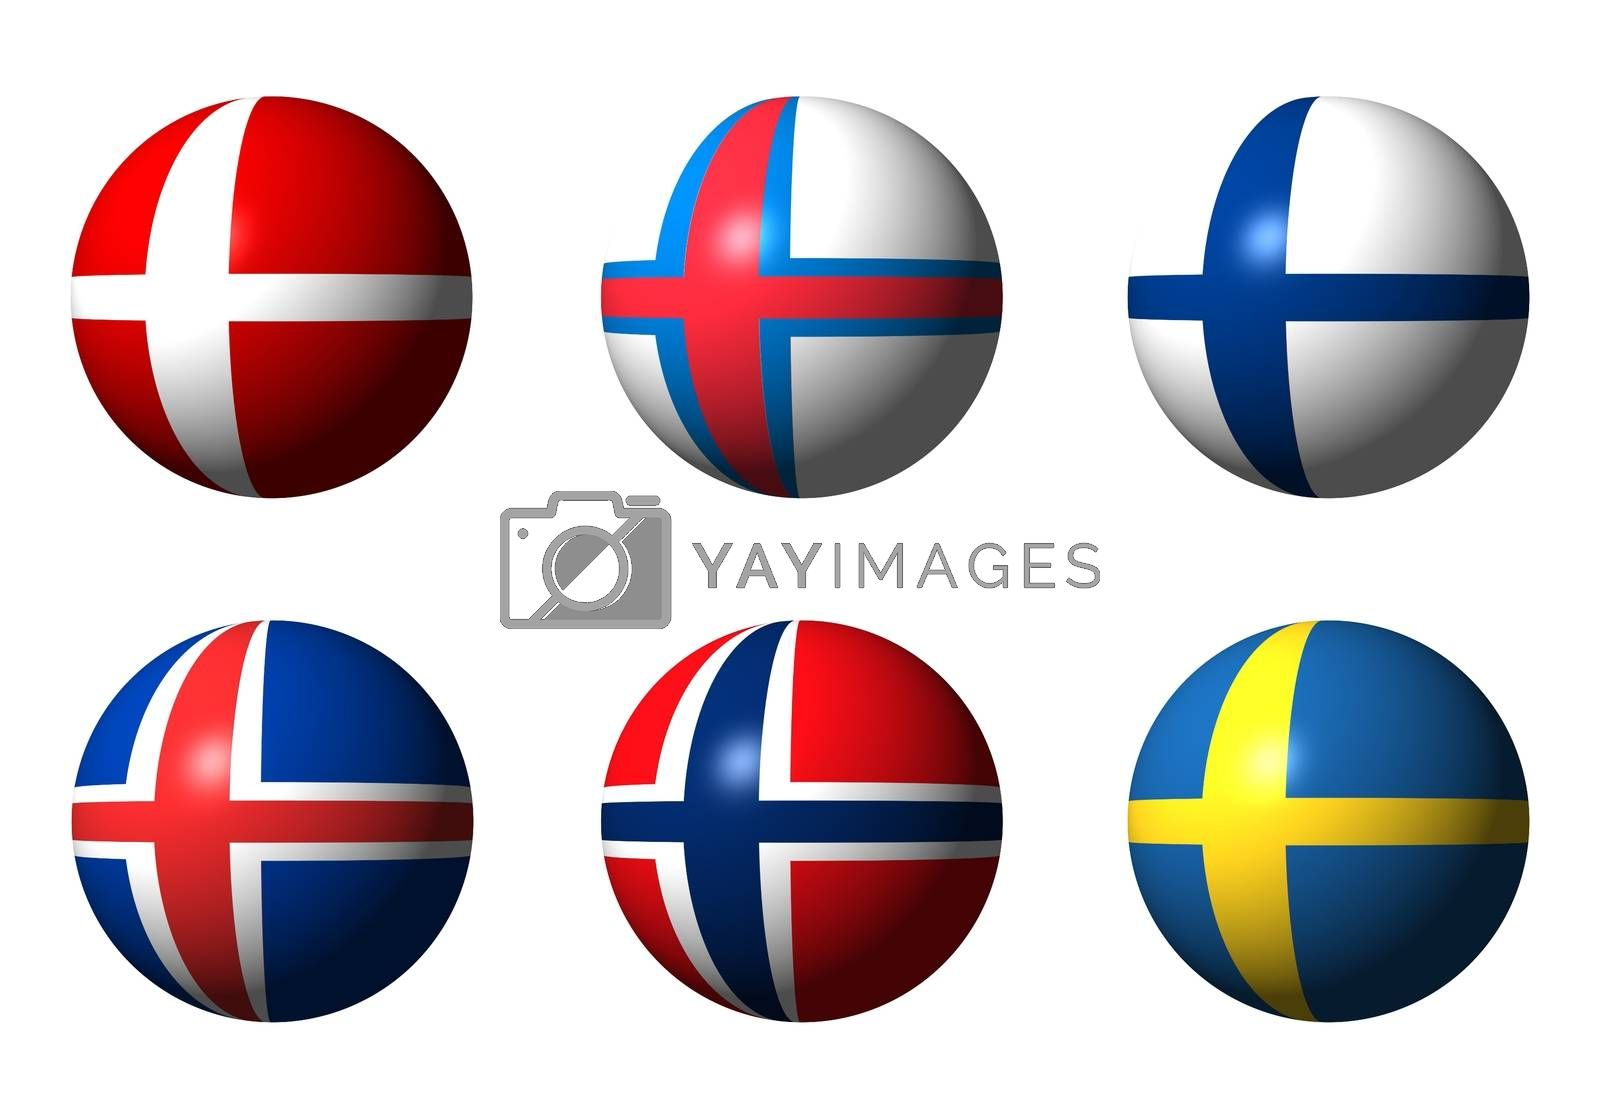 Collage of Scandinavian flags by alessandro0770